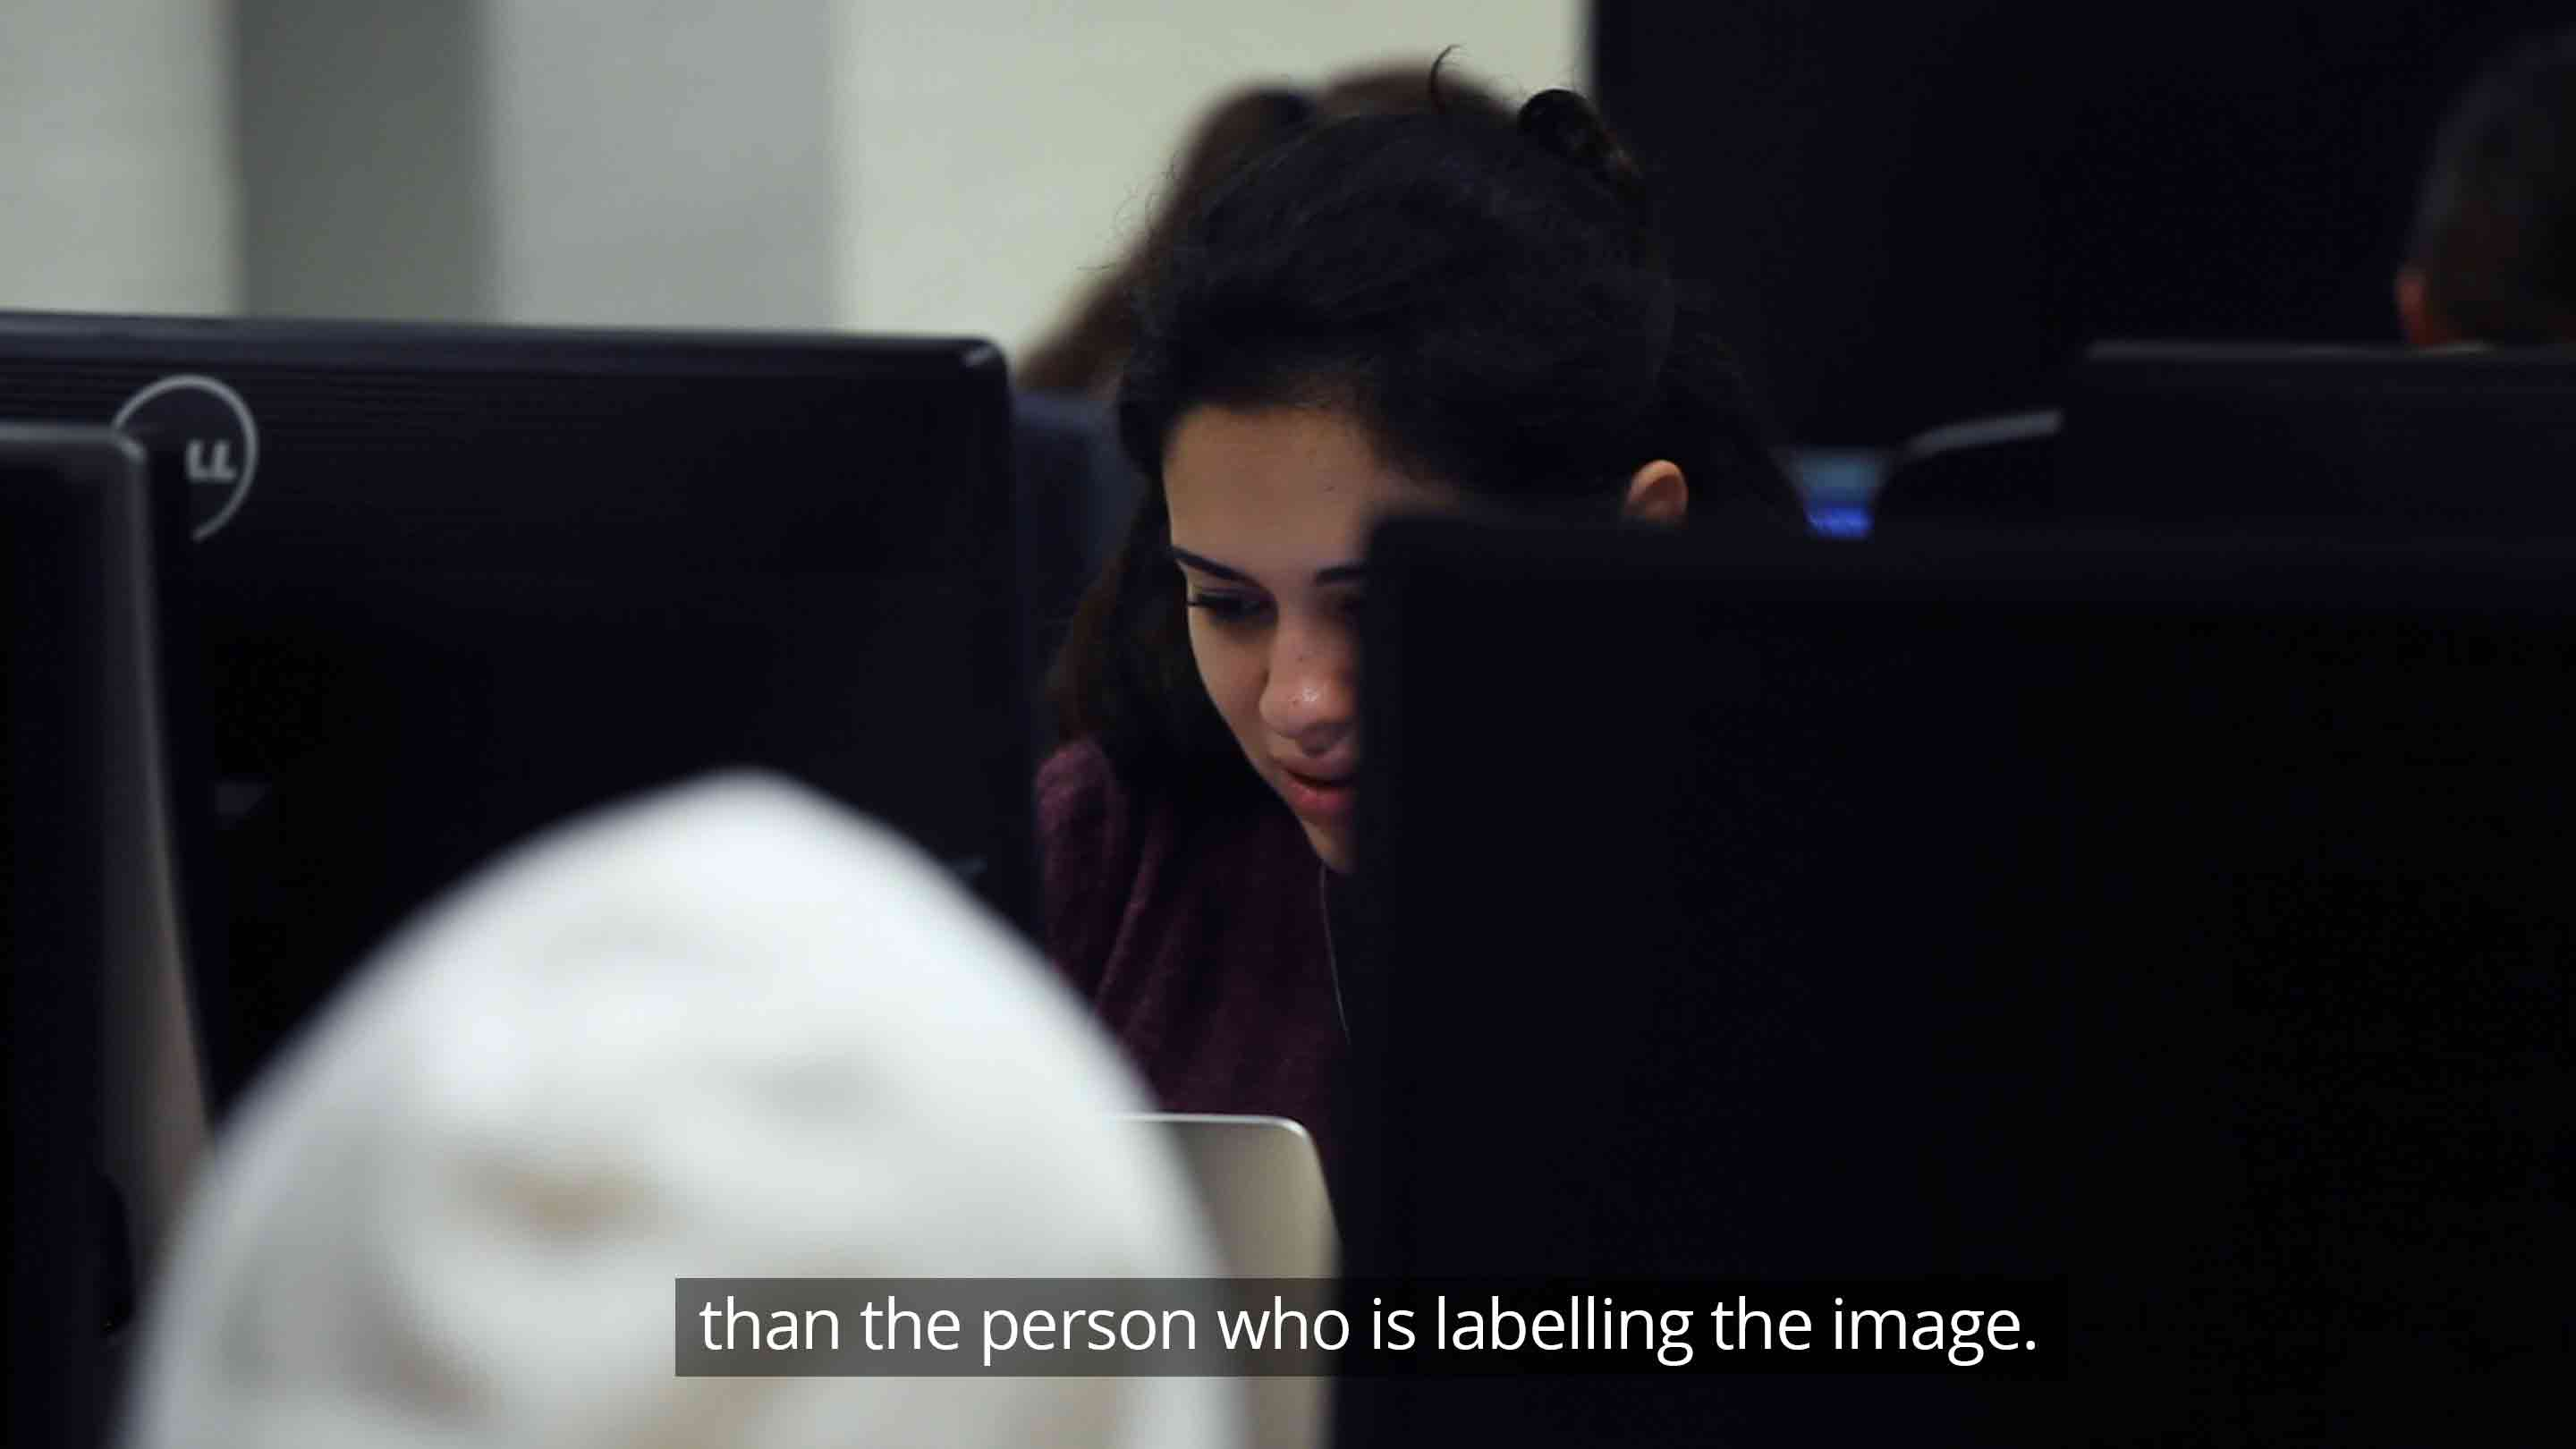 than the person who's labelling the image.